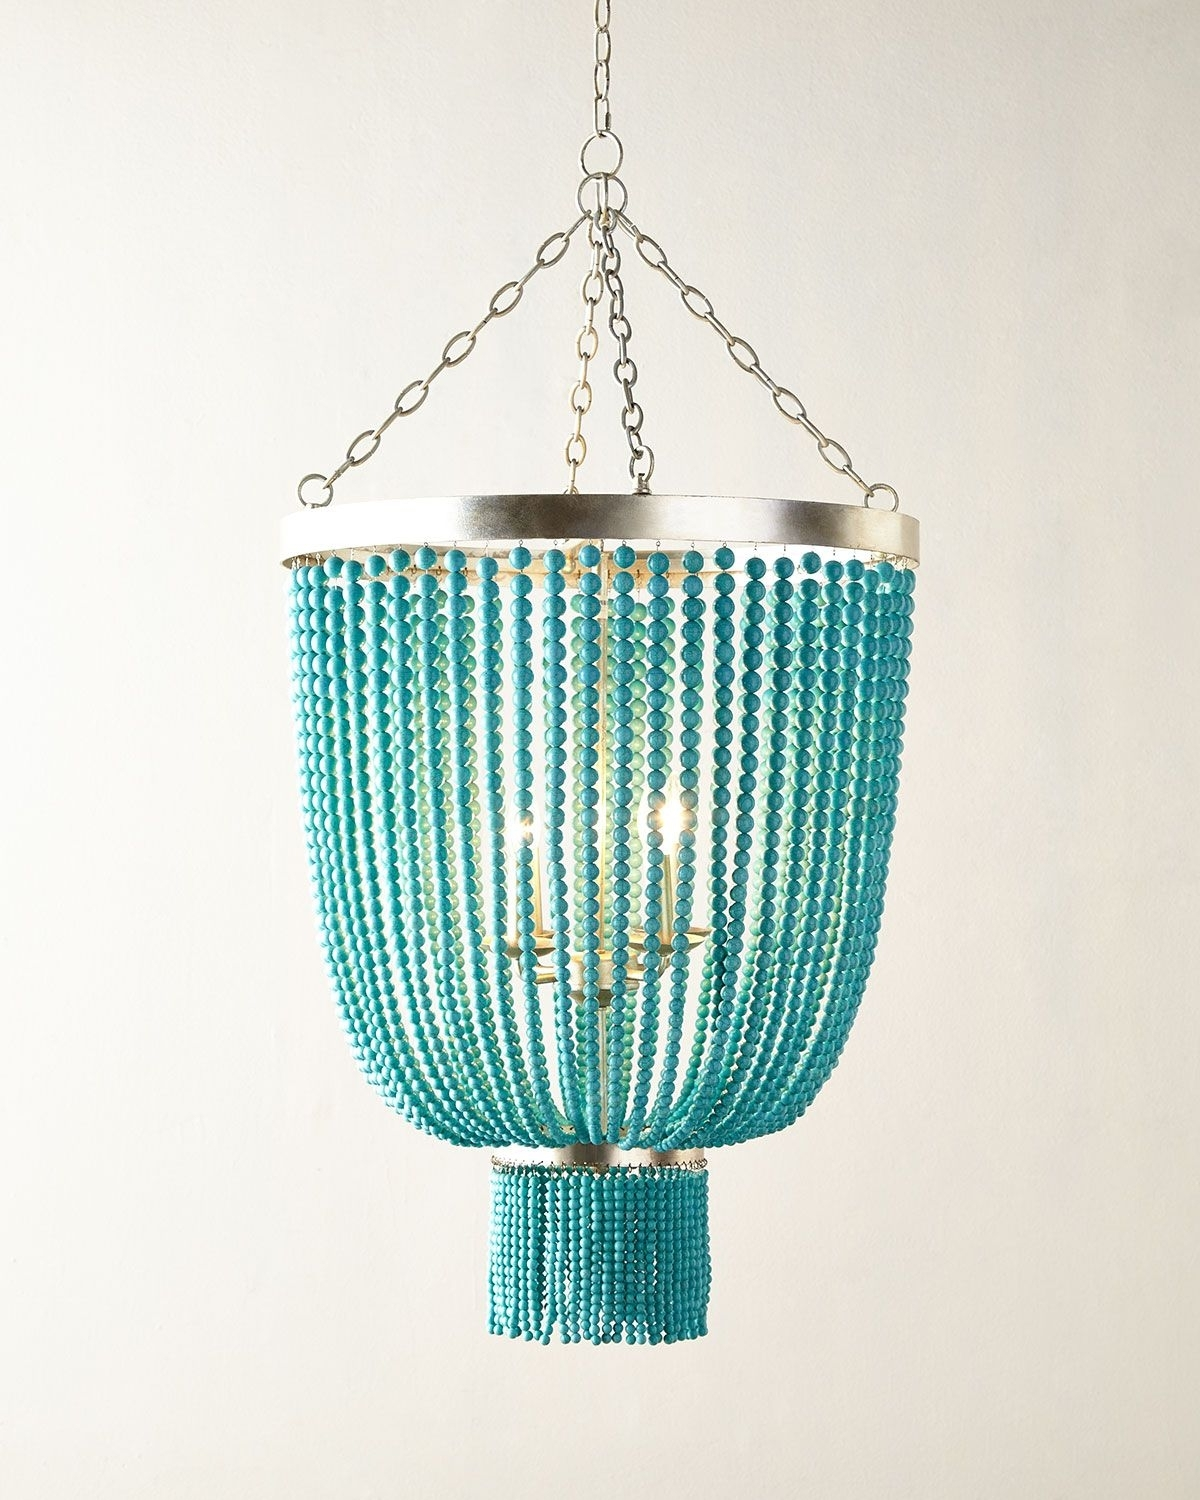 Small Turquoise Beaded Chandeliers Intended For Current Lighting : Aqua Light Turquoise Green Vintage Style Chandelier (View 10 of 15)